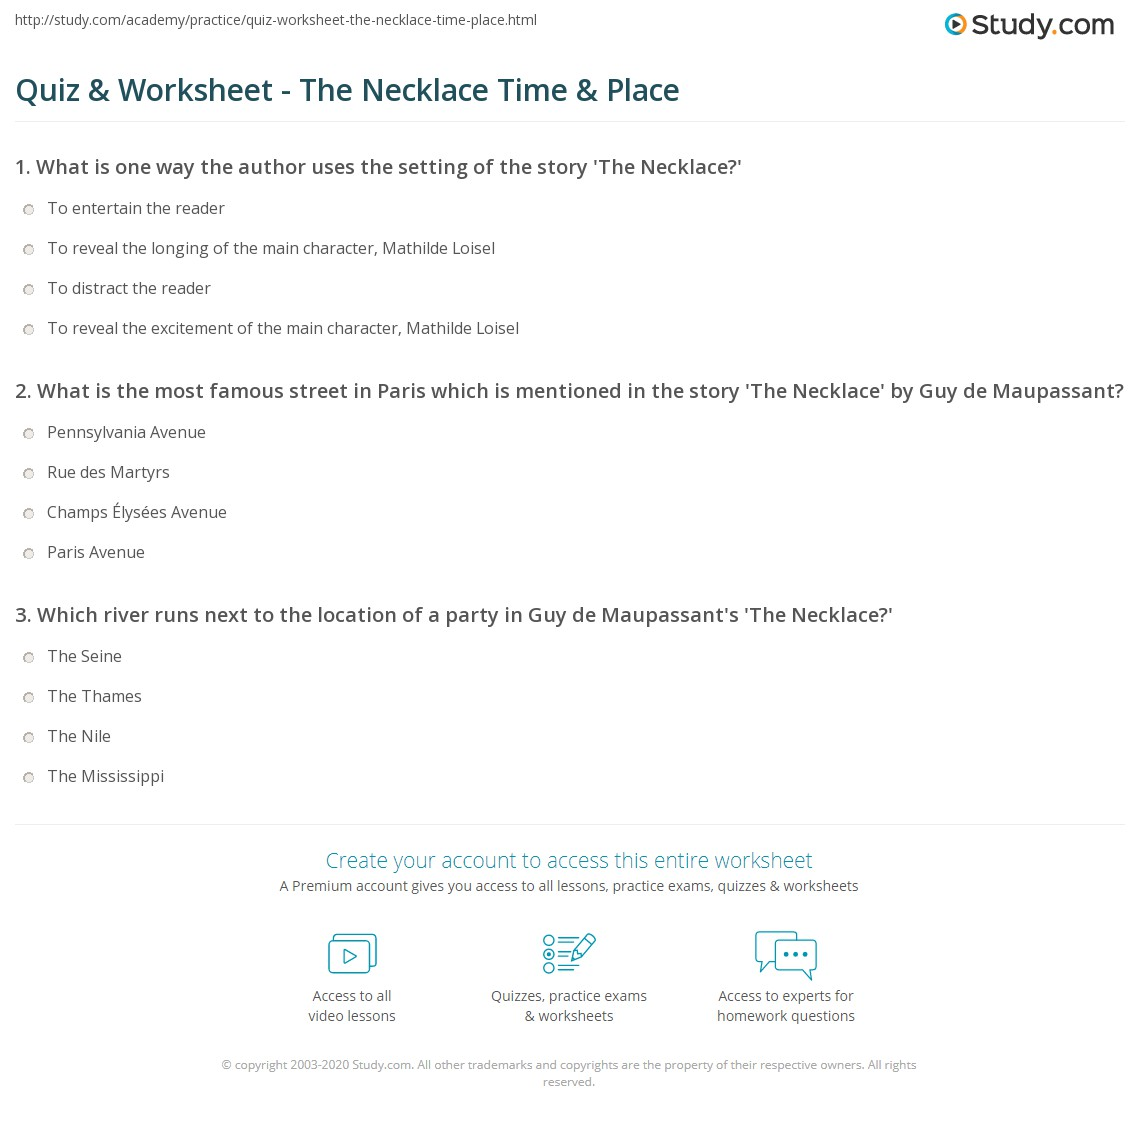 quiz worksheet the necklace time place com what is the most famous street in paris which is mentioned in the story the necklace by guy de maupassant